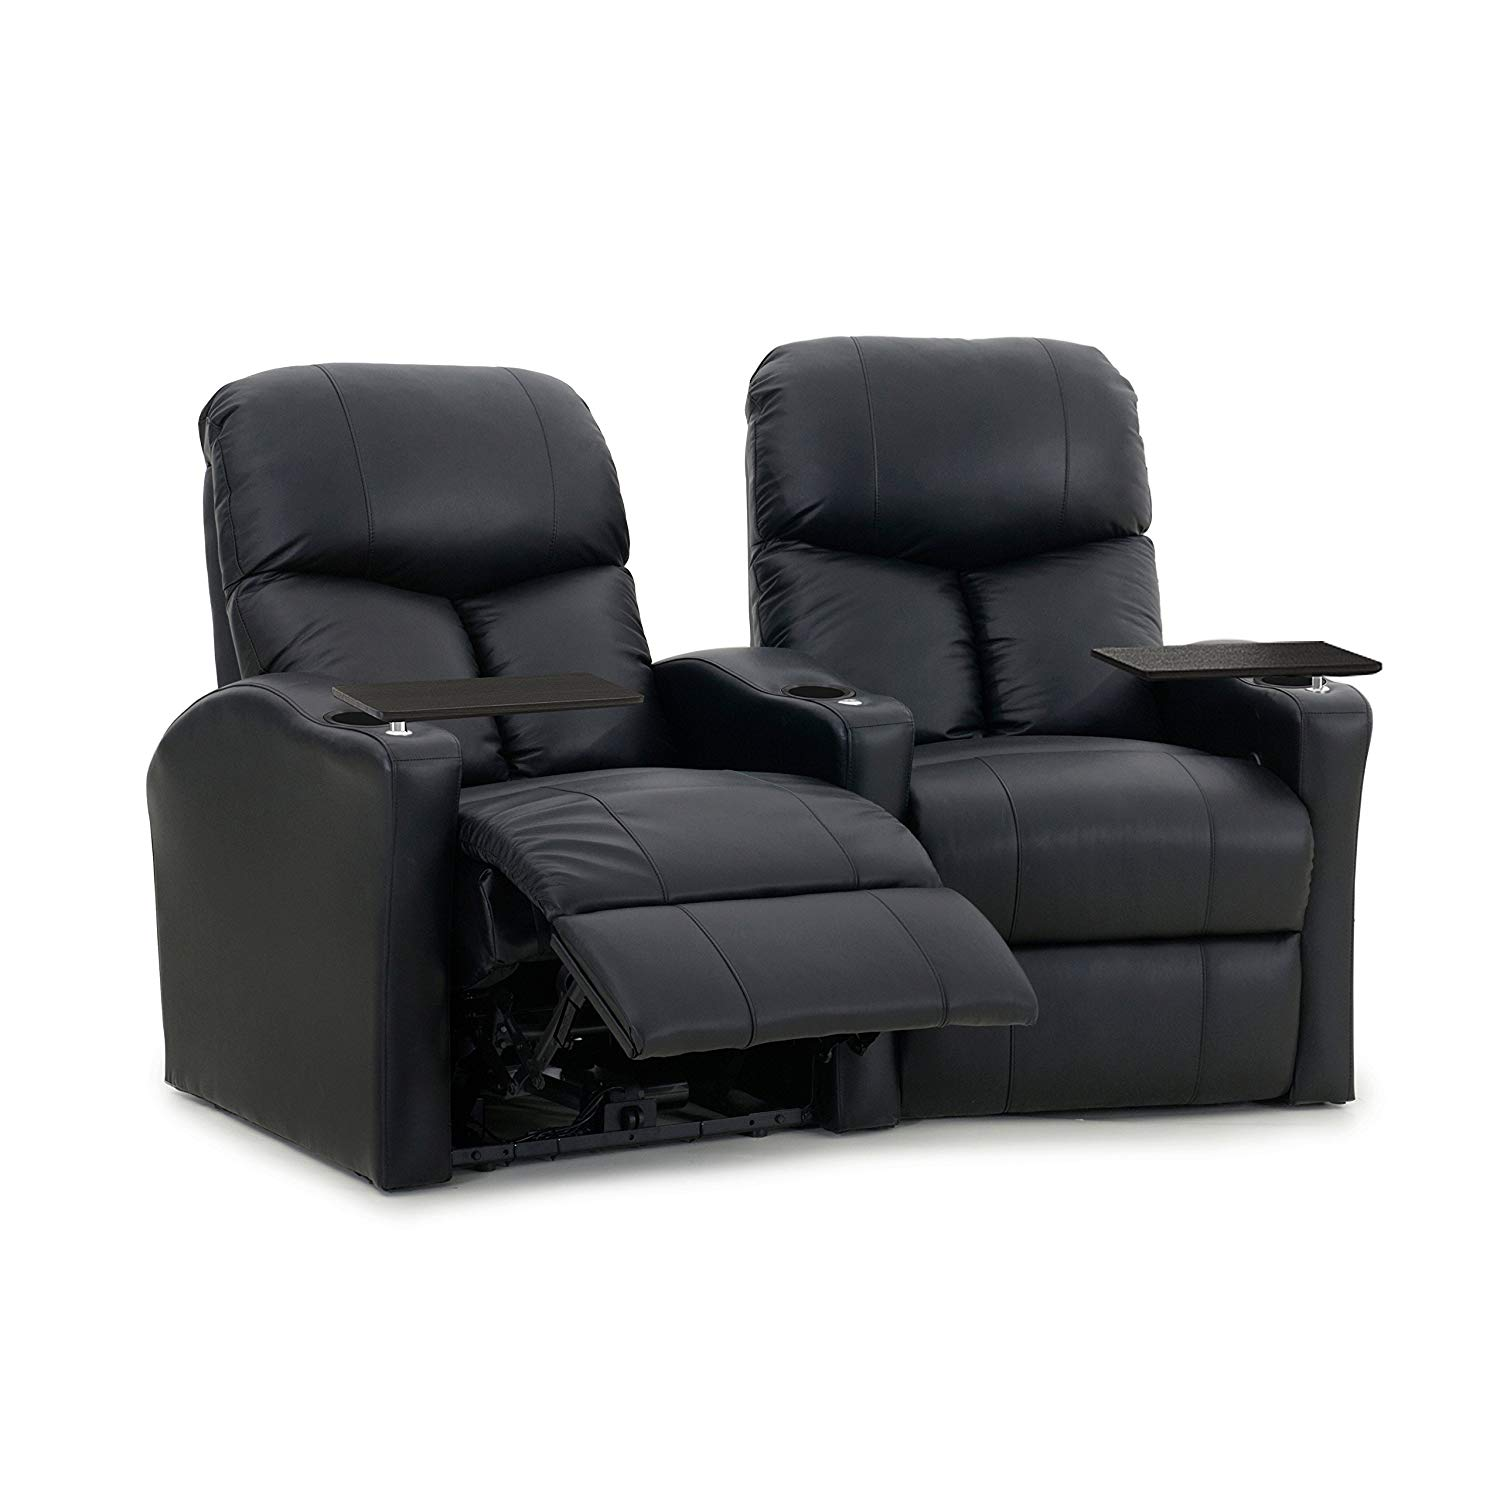 theater chairs best buy xl zero gravity chair magnolia home seating row of 3 seats in fabric with manual recline